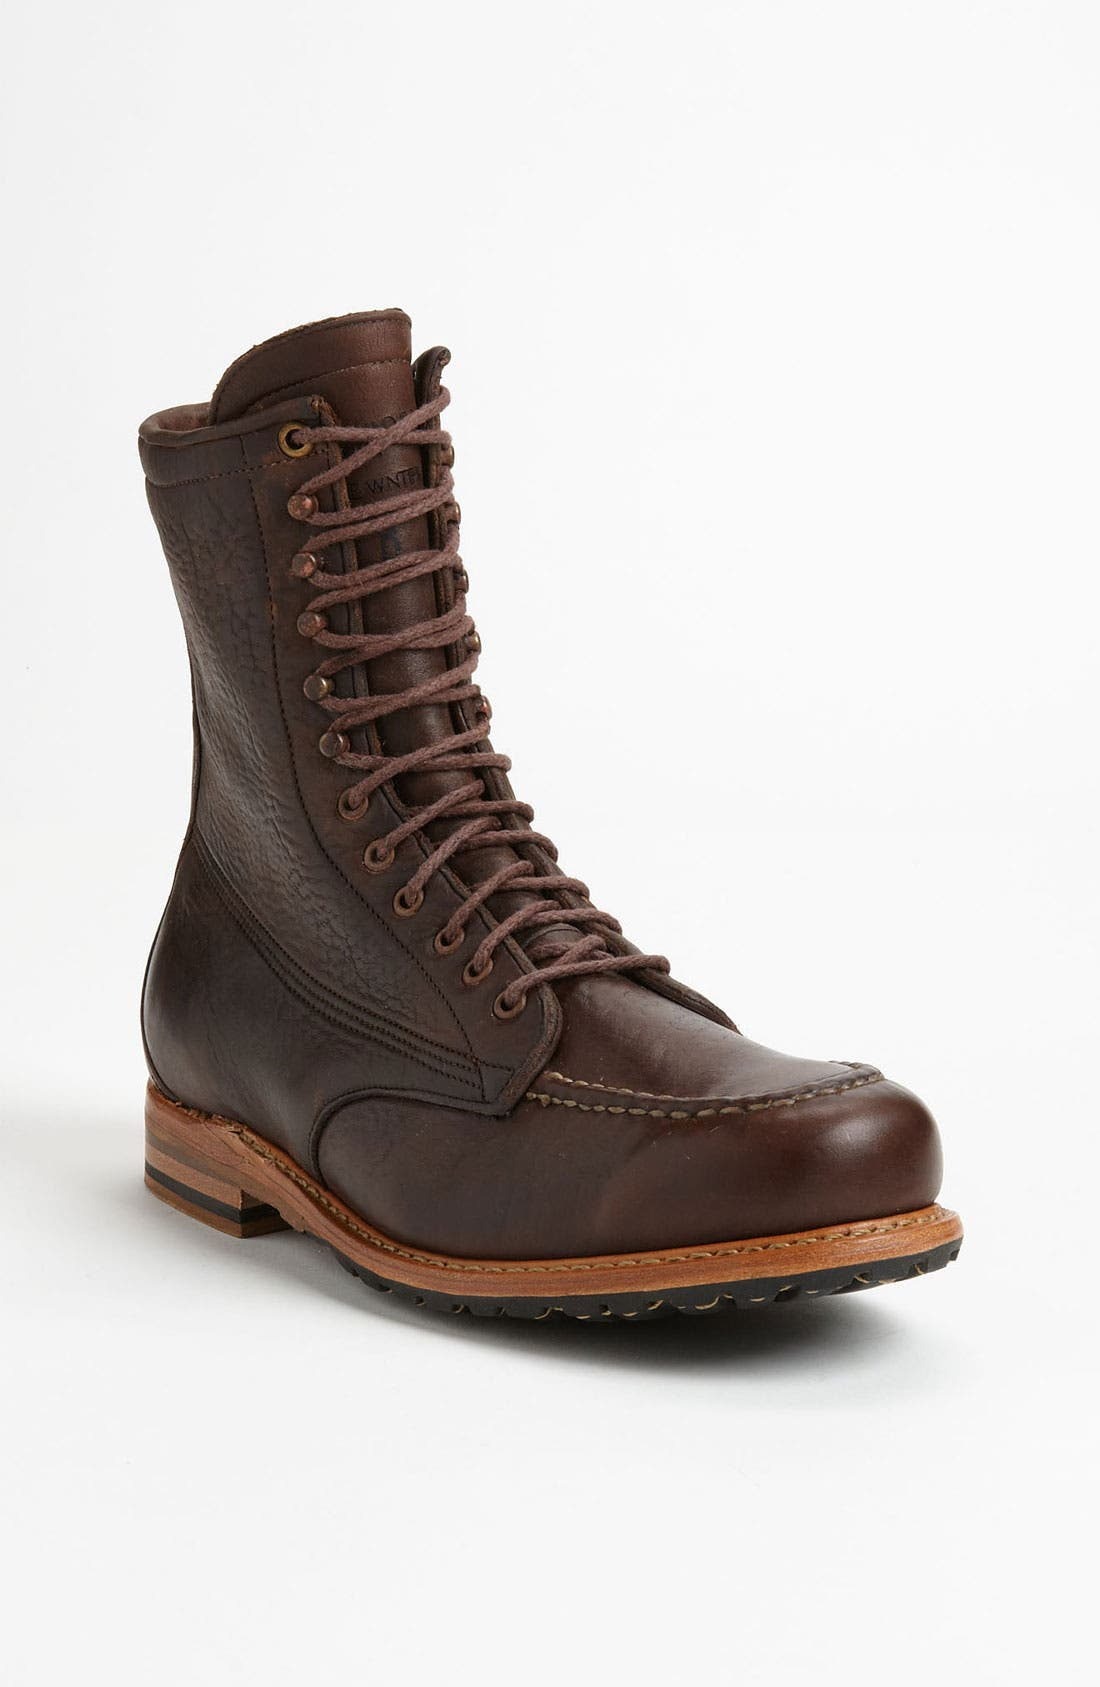 Alternate Image 1 Selected - Timberland Boot Company 'Blake Winter' Moc Toe Boot